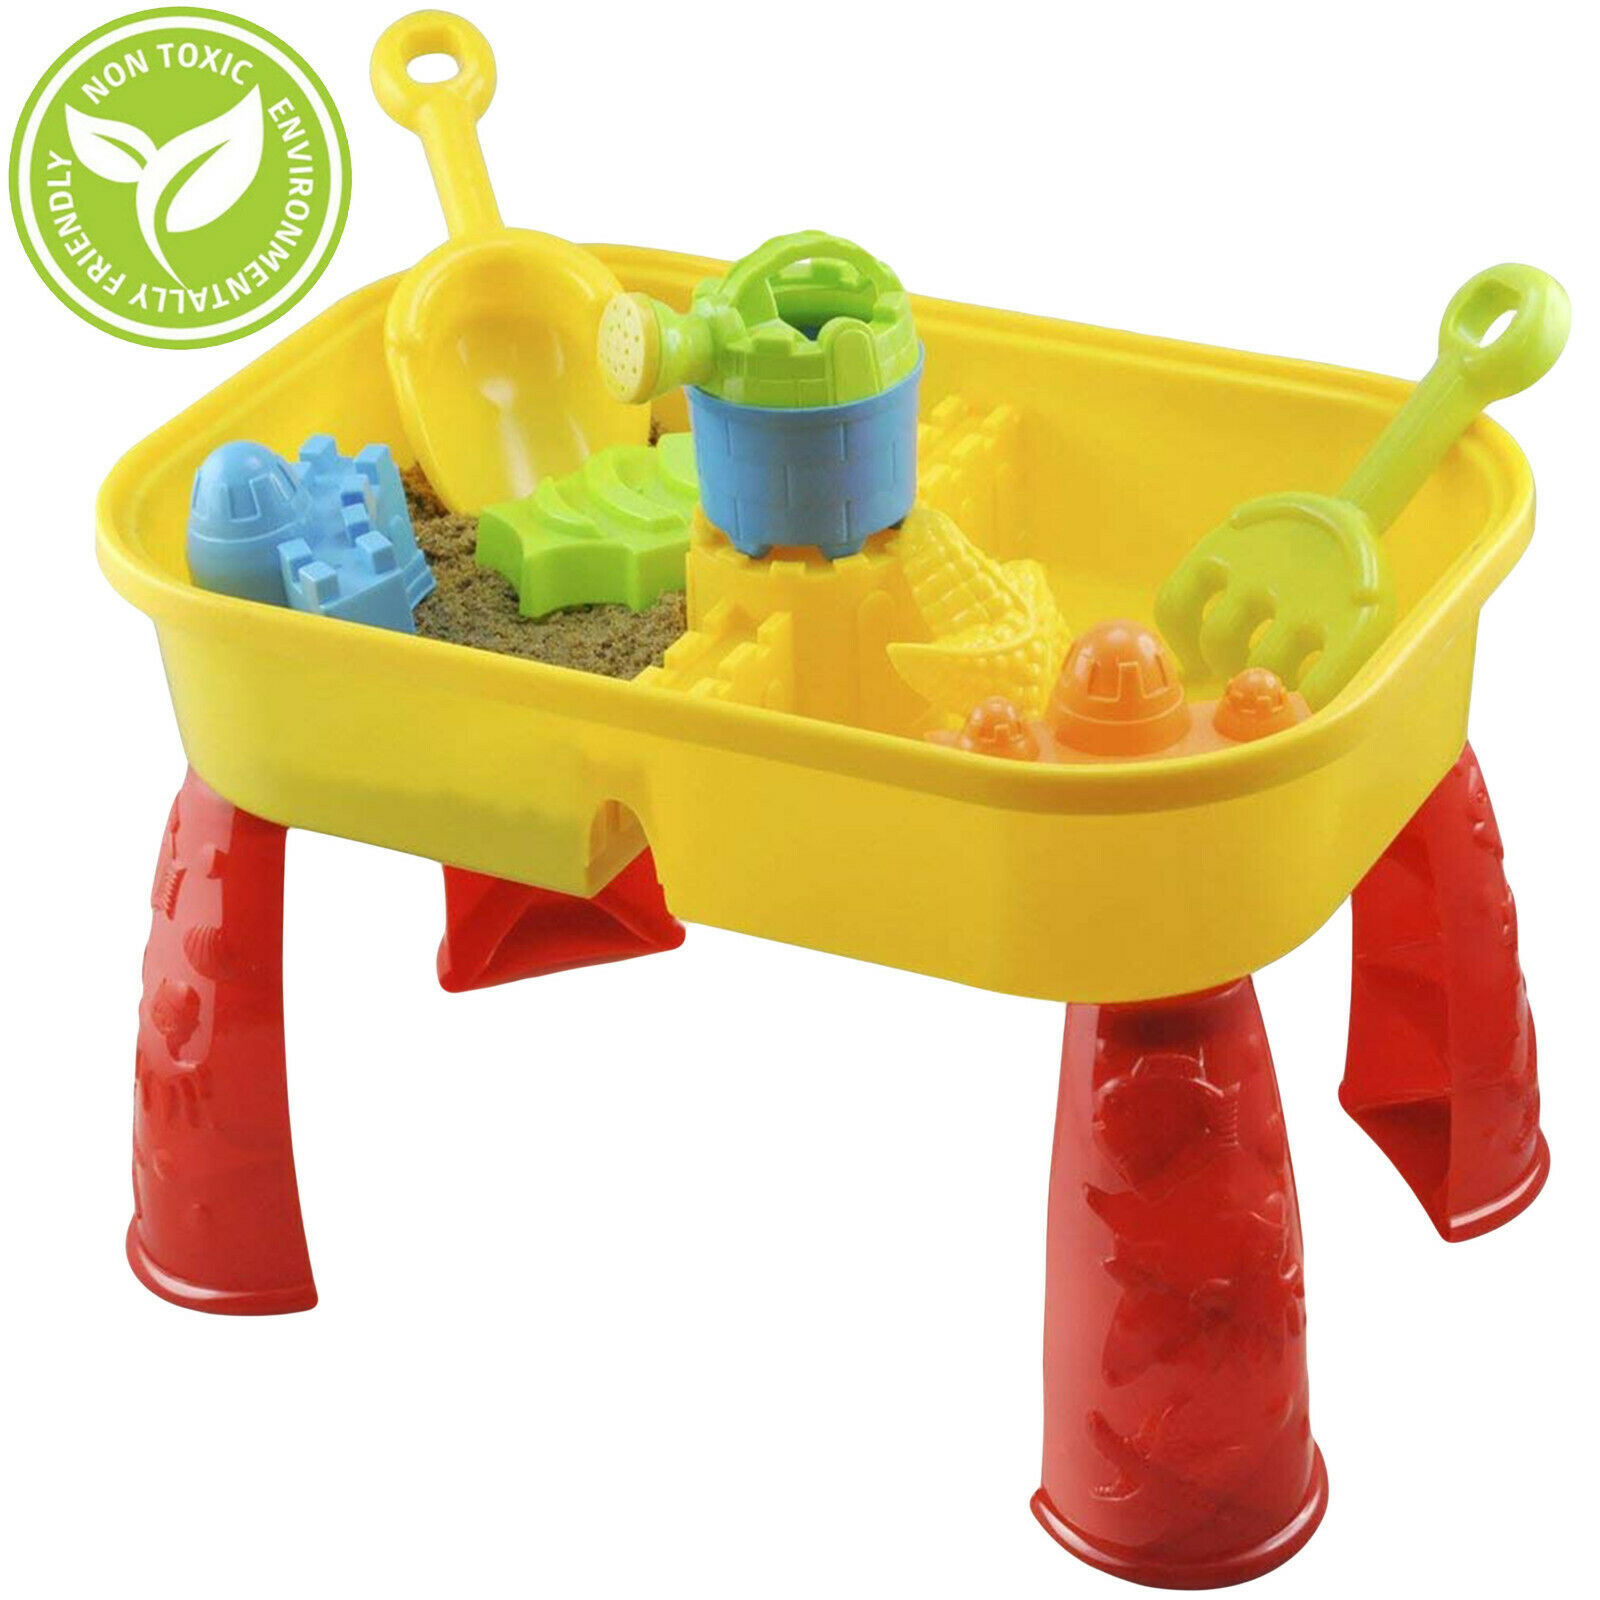 Sand and Water Table Garden Sandpit Play Set Toy Watering Can Spade Sand Bucket £15.99 @ eBay